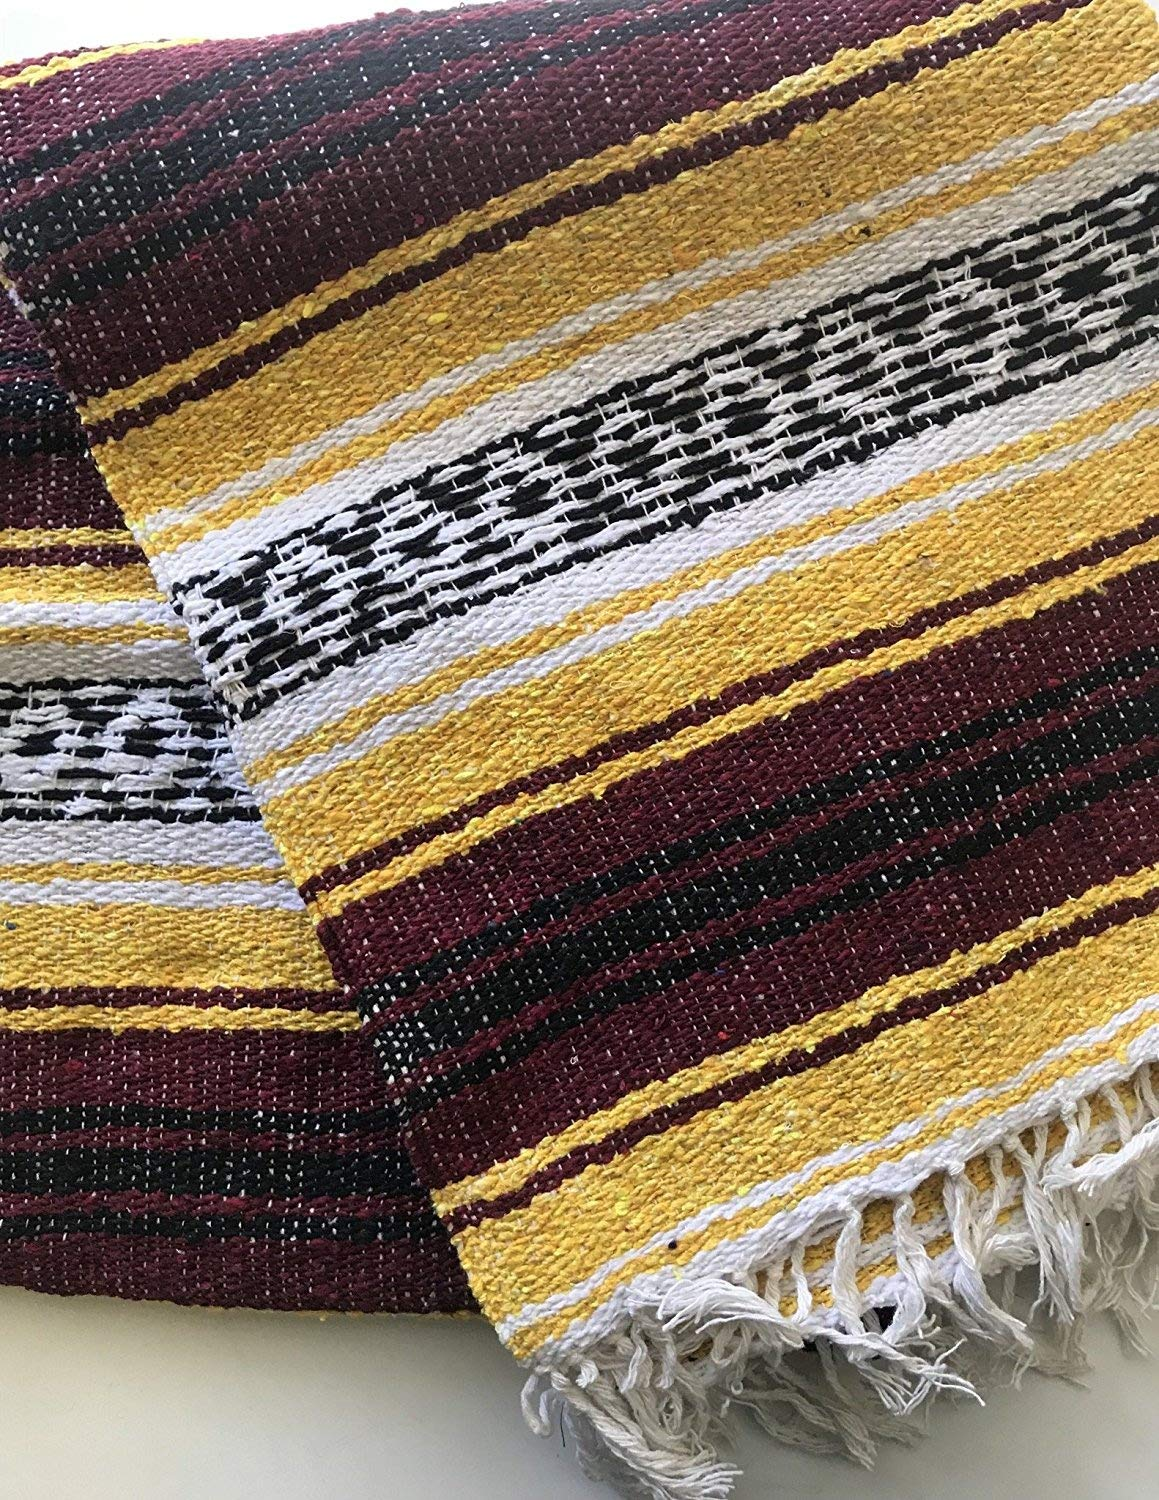 Tan//Dark Brown//Black Mexitems Mexican Falsa Blanket Authentic 52 X 72 Pick Your Own Color